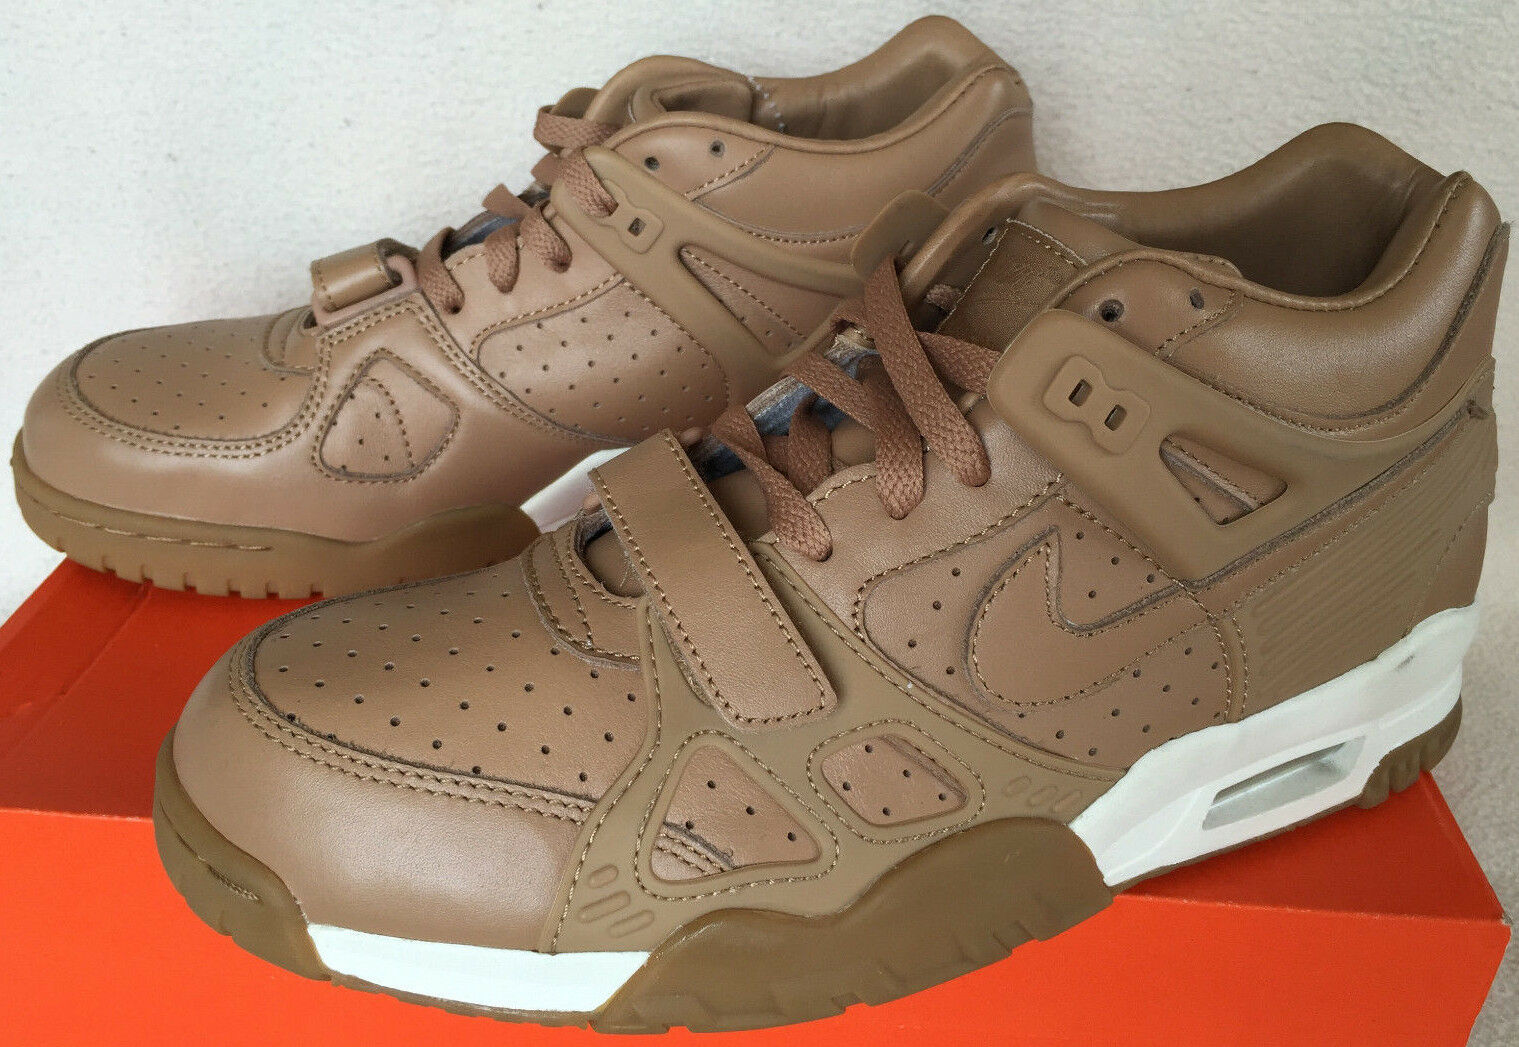 Nike Air Trainer III 3 PRM Premium QS 709989-200 Subdued Gum Shoes Men's 8.5 new